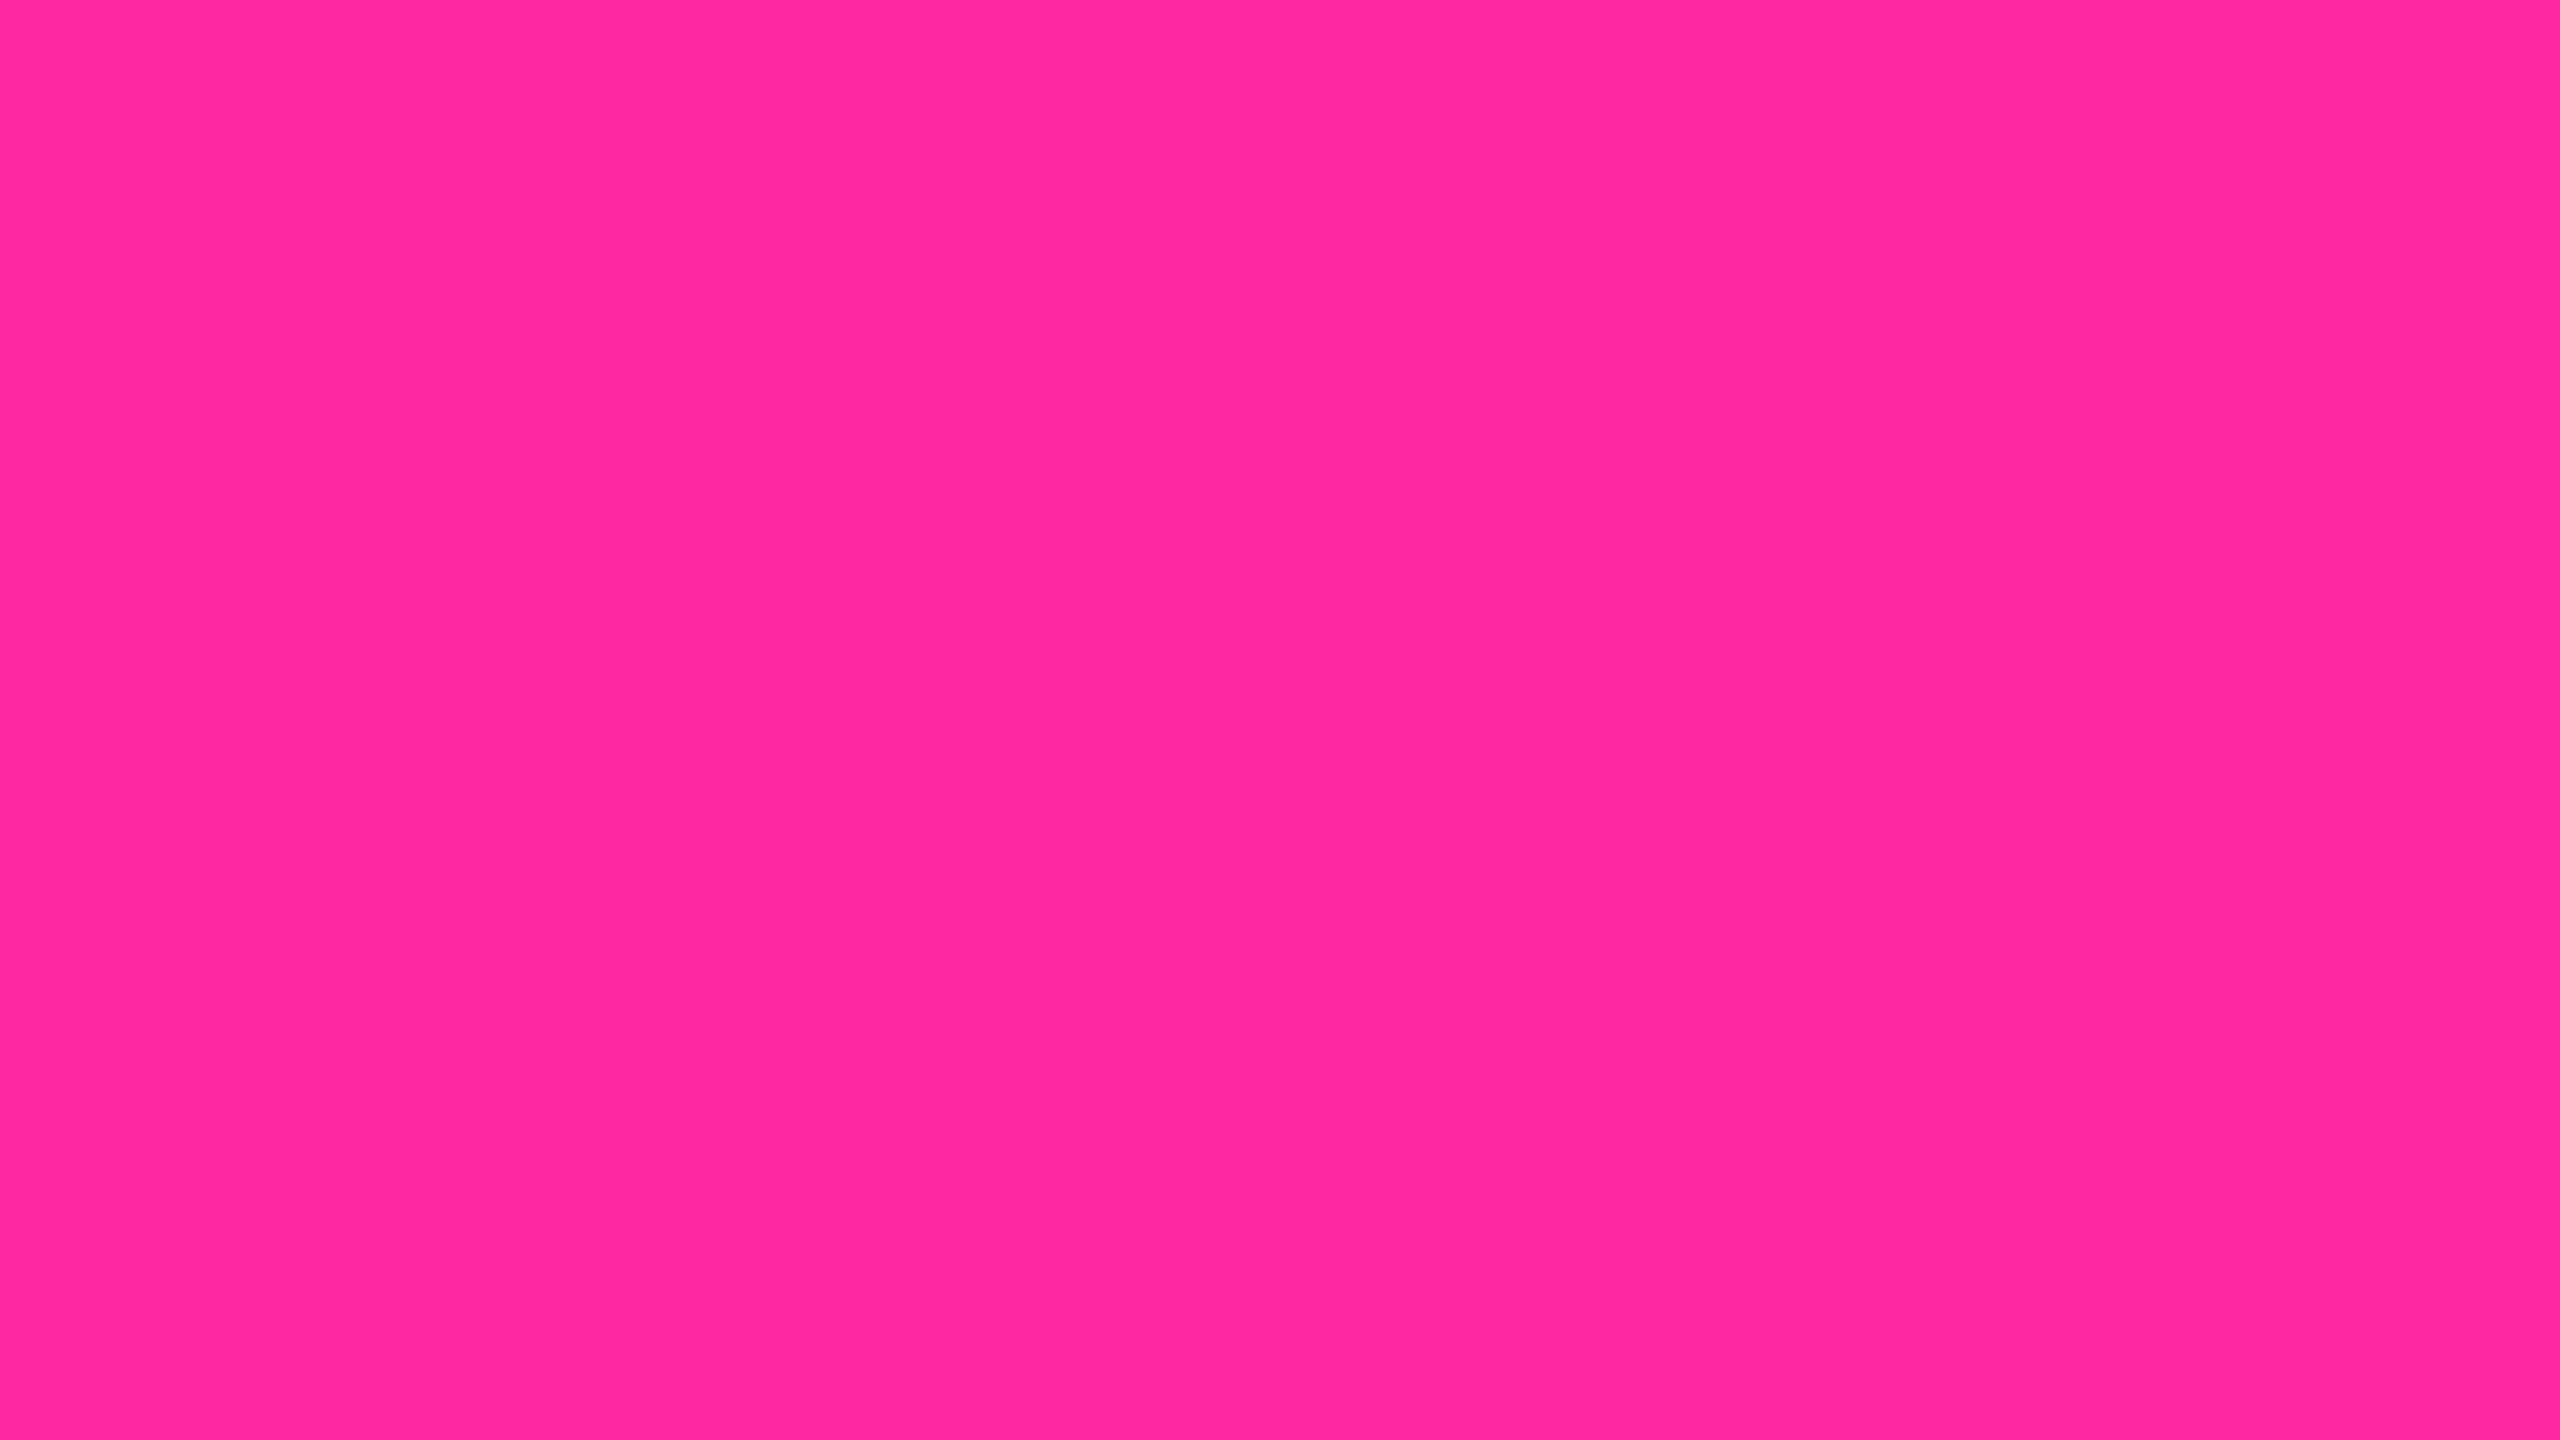 2560x1440 Persian Rose Solid Color Background